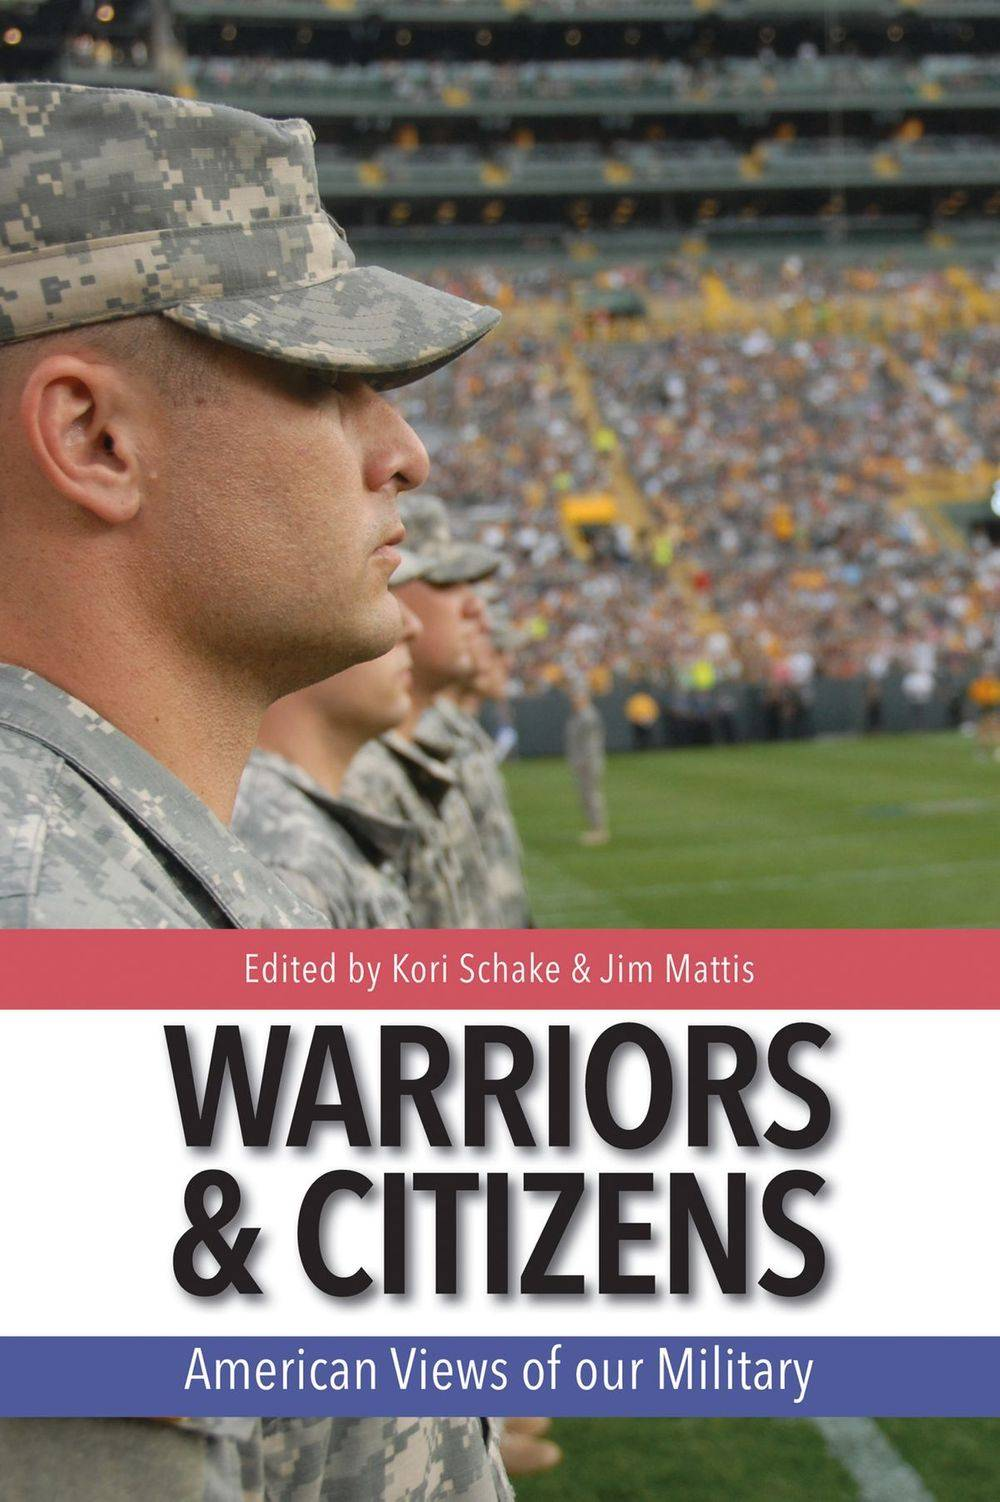 Warrior & Citizens, james mattis, jim mattis, kori schake